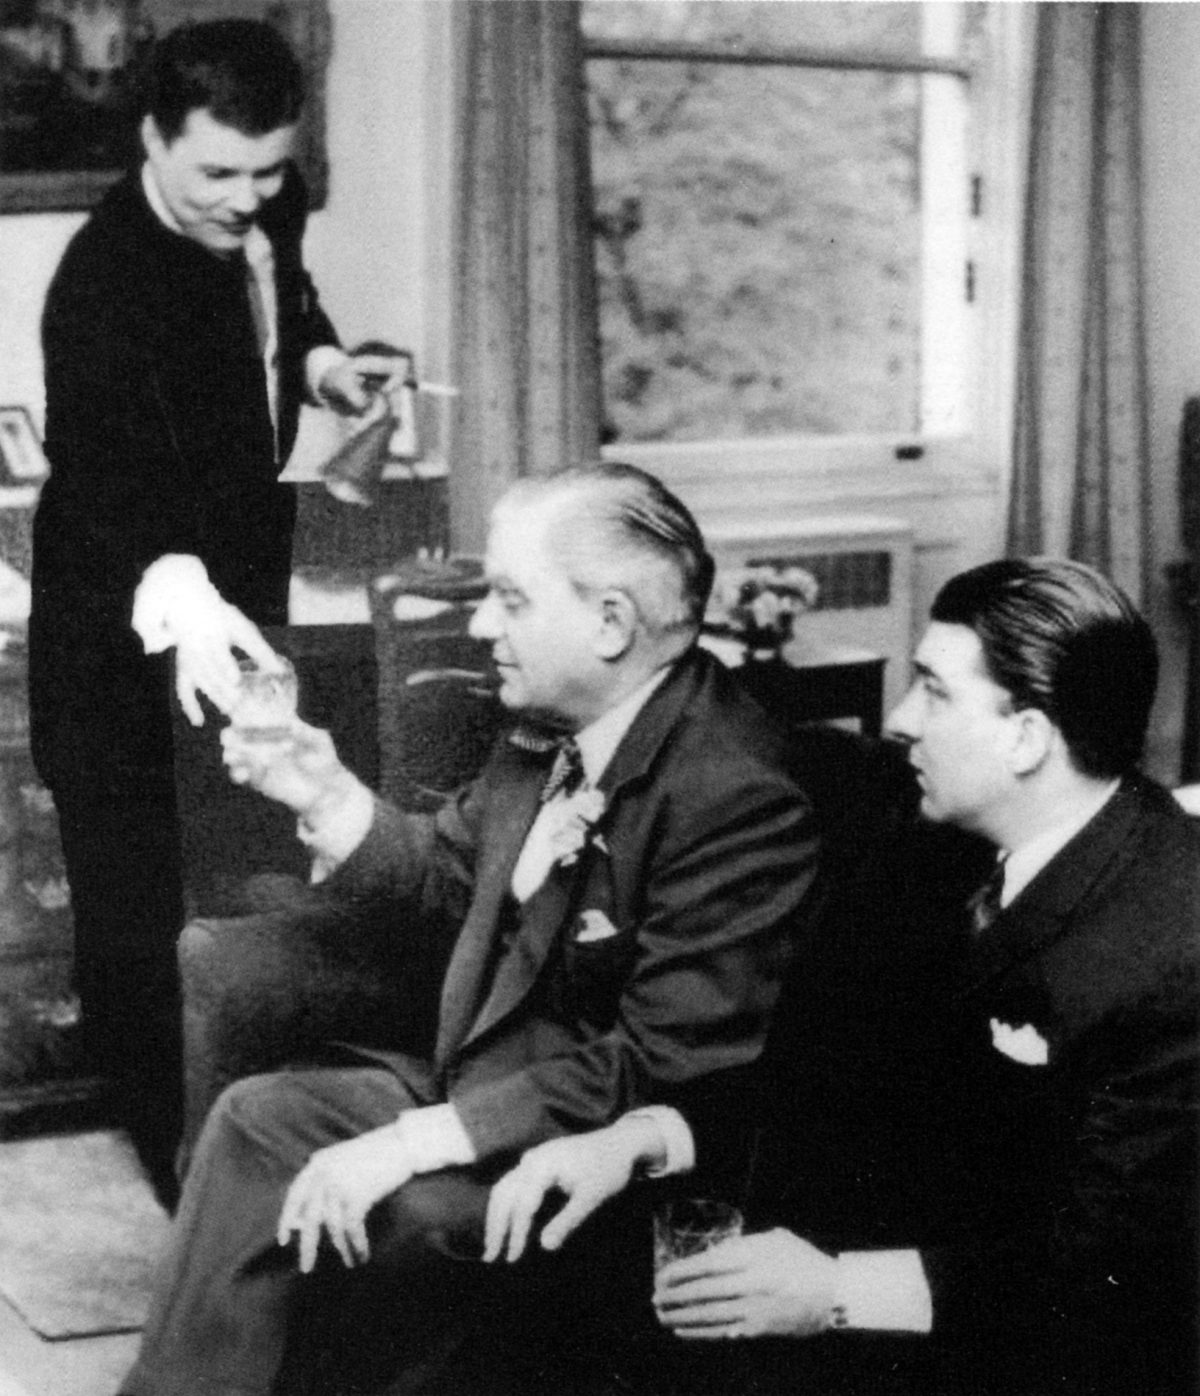 Boothby and Kray and 'Mad' Teddy Smith at Boothbys apartment